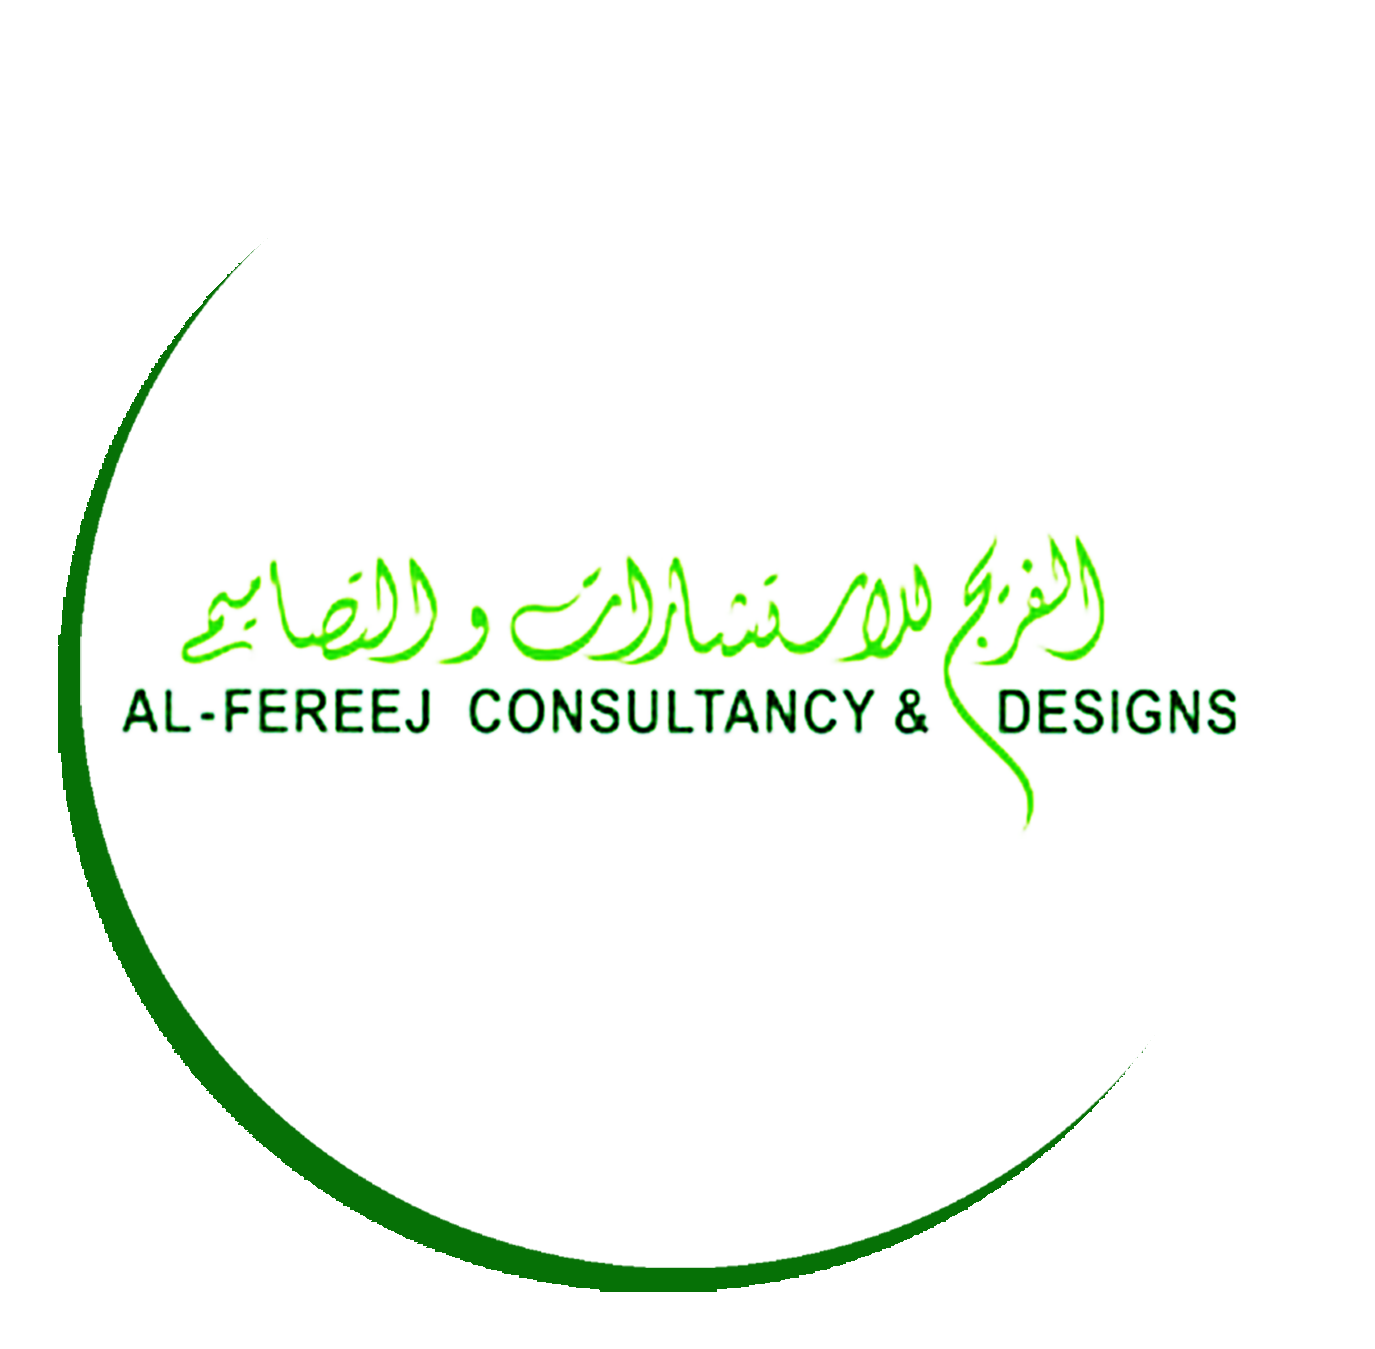 Al-Fereej Consultancy & Designs